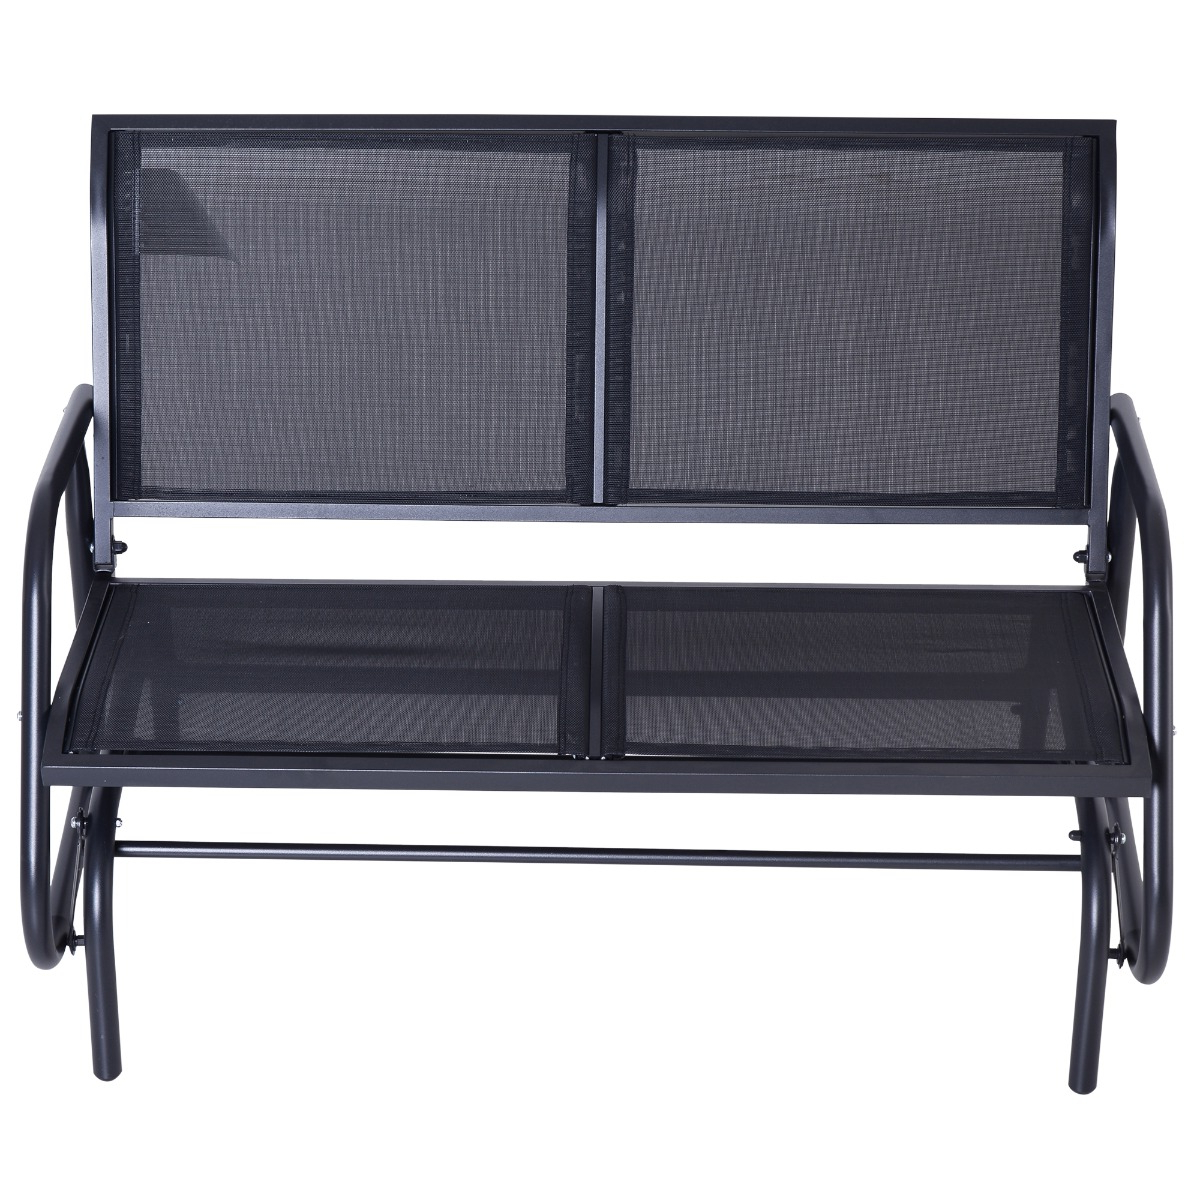 Outsunny Patio Double Glider Bench Swing Chair Rocker Heavy Duty Outdoor  Garden Black For Recent Iron Double Patio Glider Benches (Gallery 10 of 30)